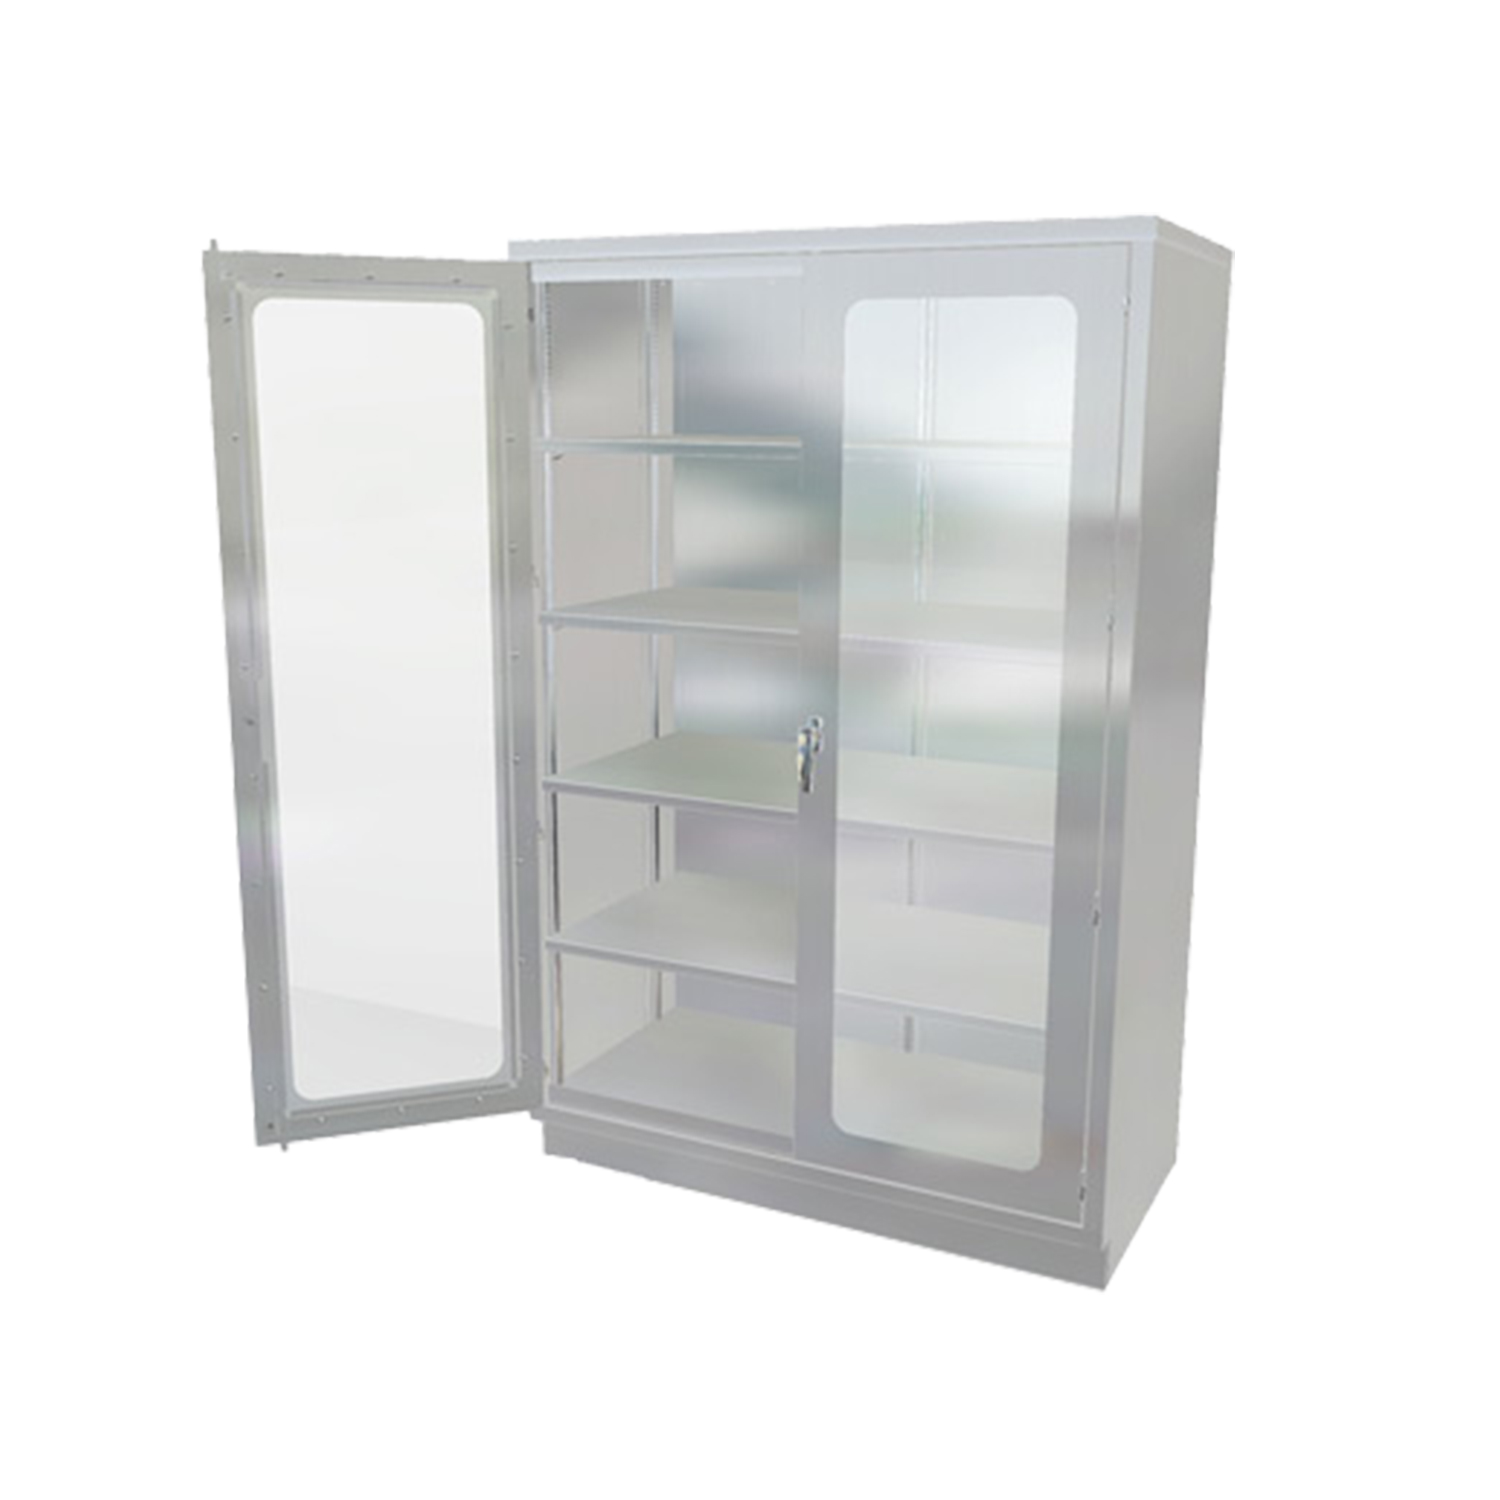 DRE Stainless Steel Operating Room Cabinet